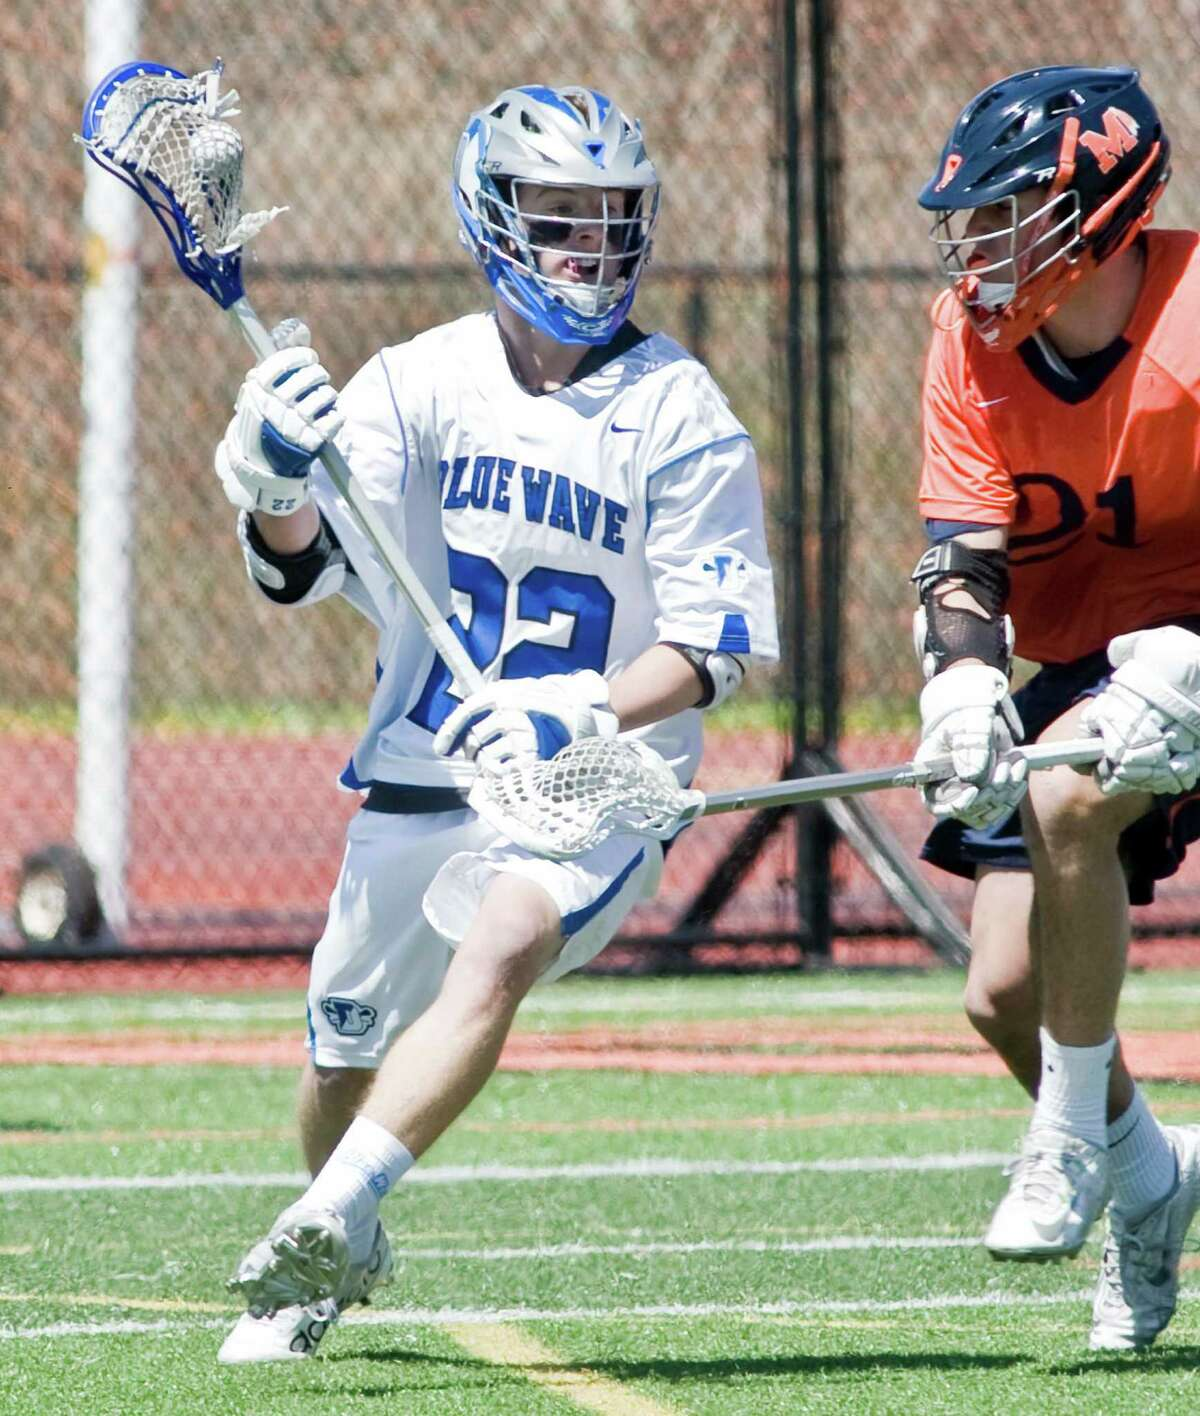 Darien High School's Hudson Hamill tries to get by Manhasset High School's Peter Colan in a game played at Ridgefield High School. Saturday, April 16, 2016